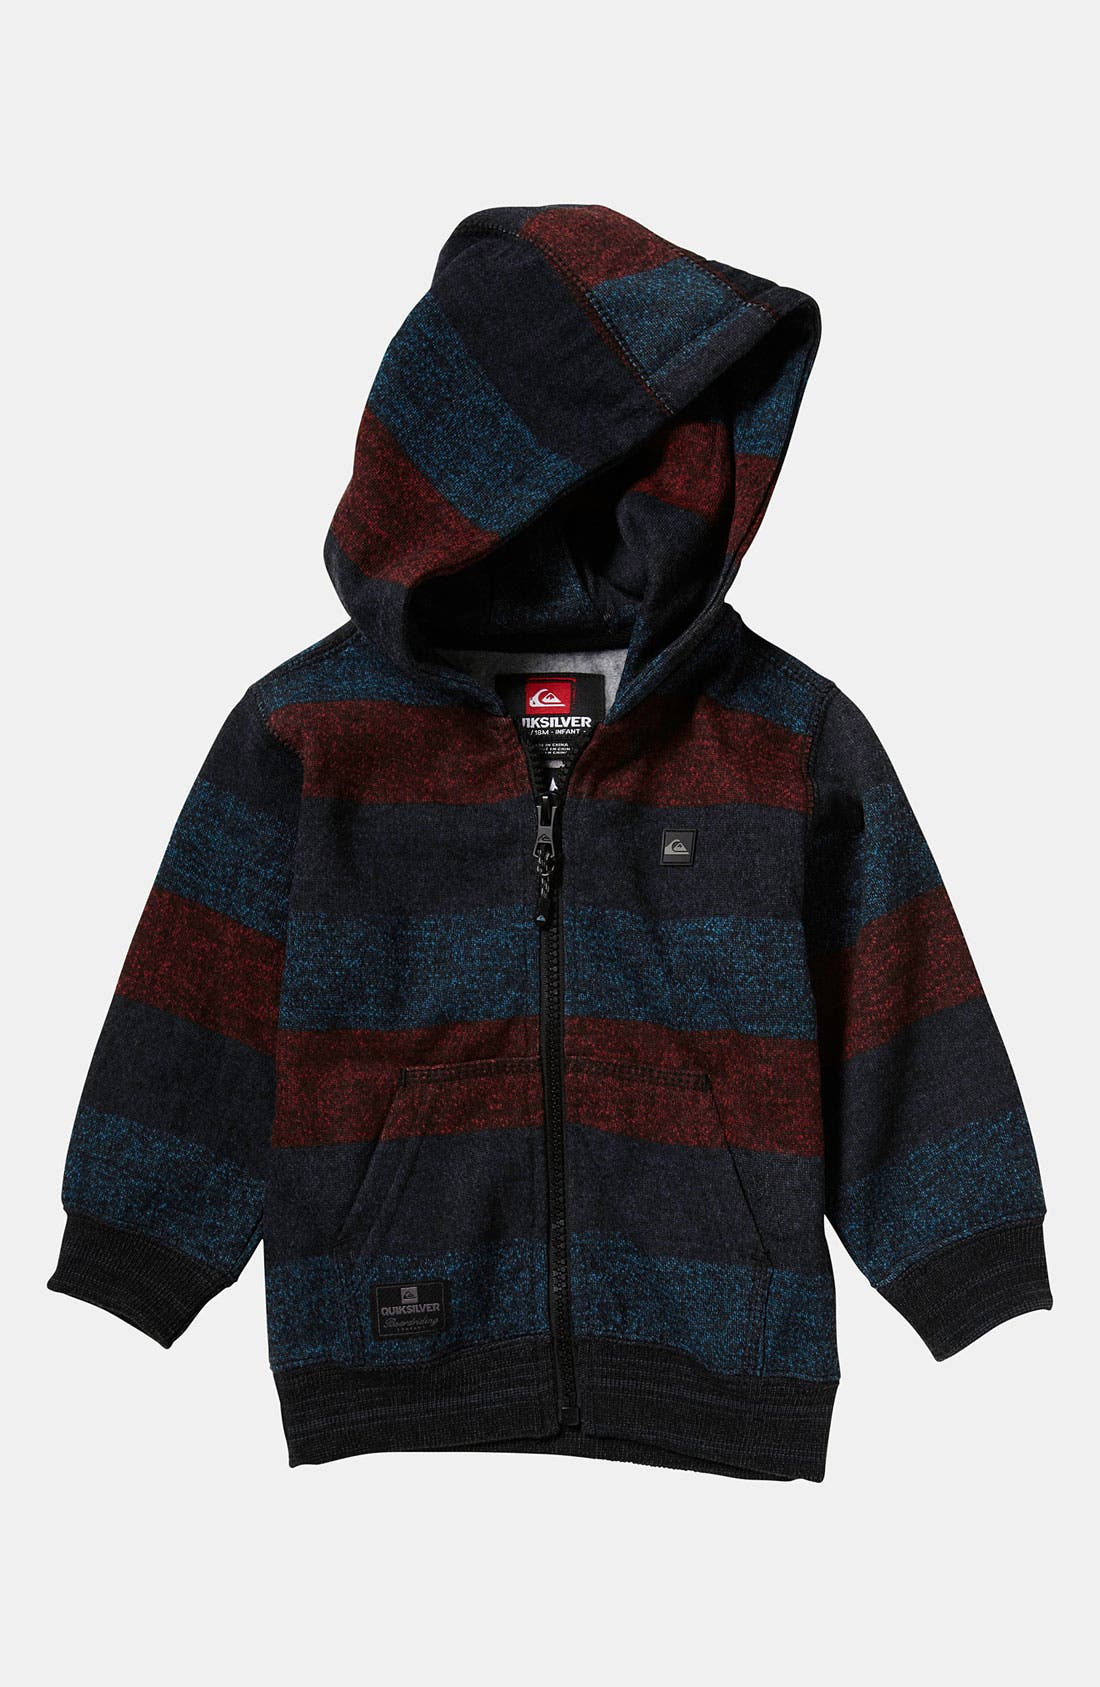 Main Image - Quiksilver 'Redondo' Stripe Hoodie (Infant)